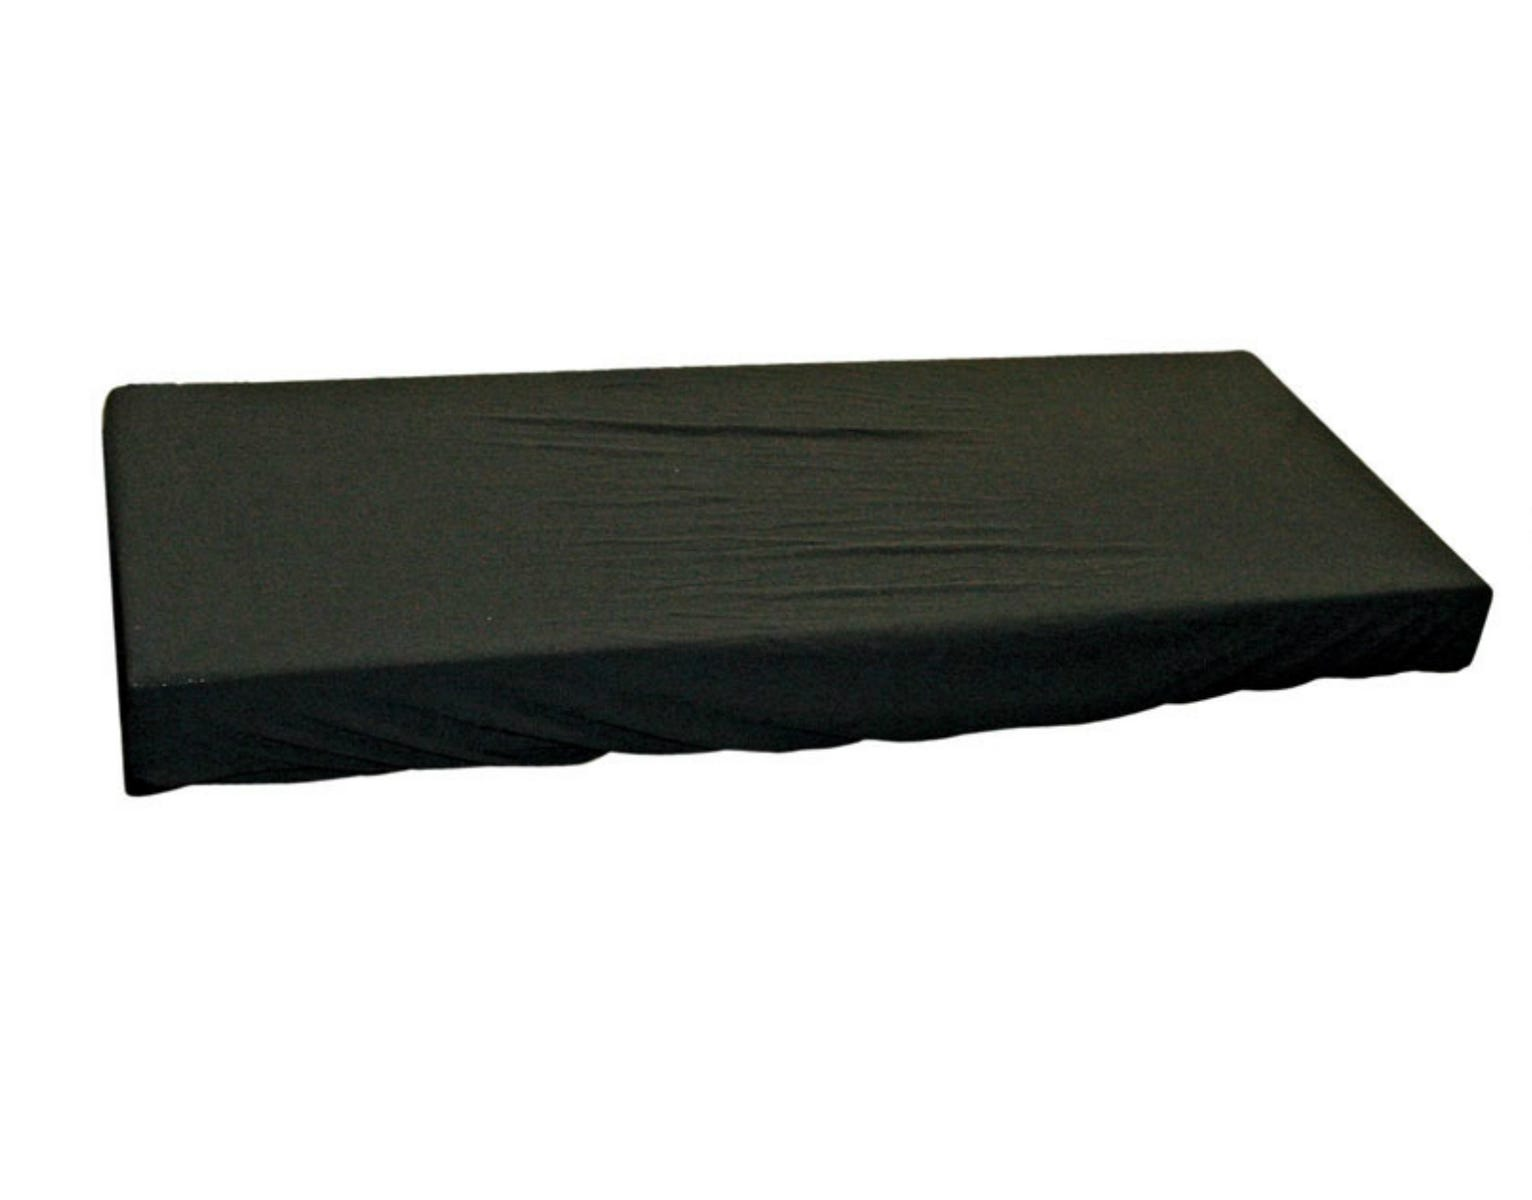 AMS Keyboard Dust Cover (Small)